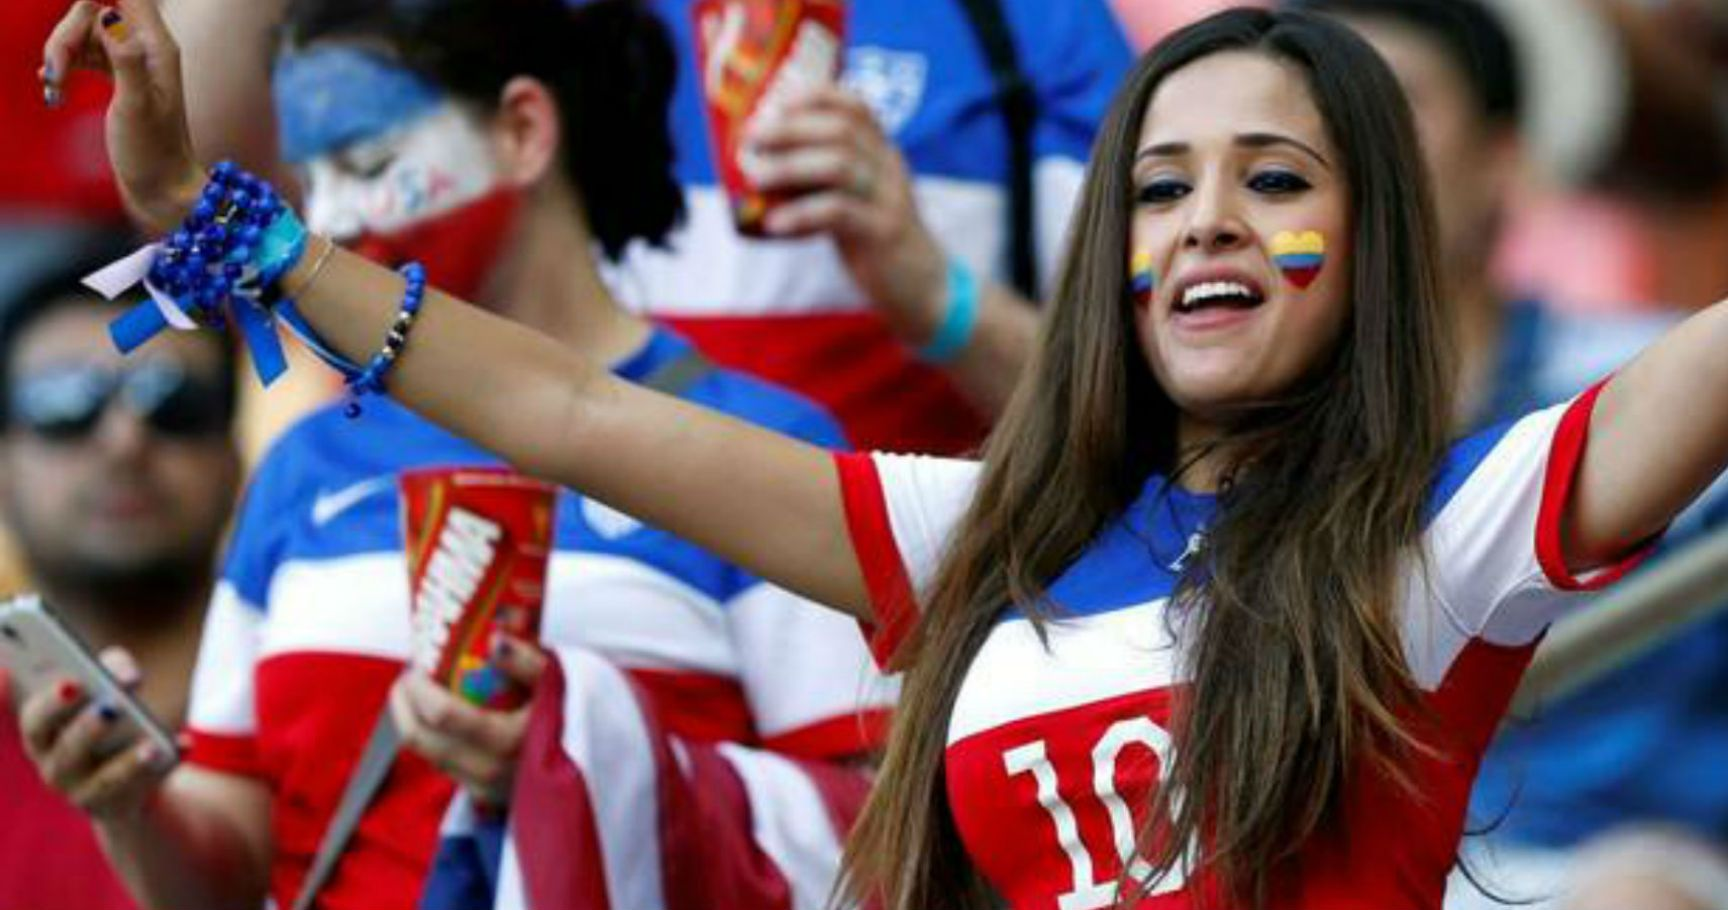 The Top 10 Countries Where The Women Will Make You Melt